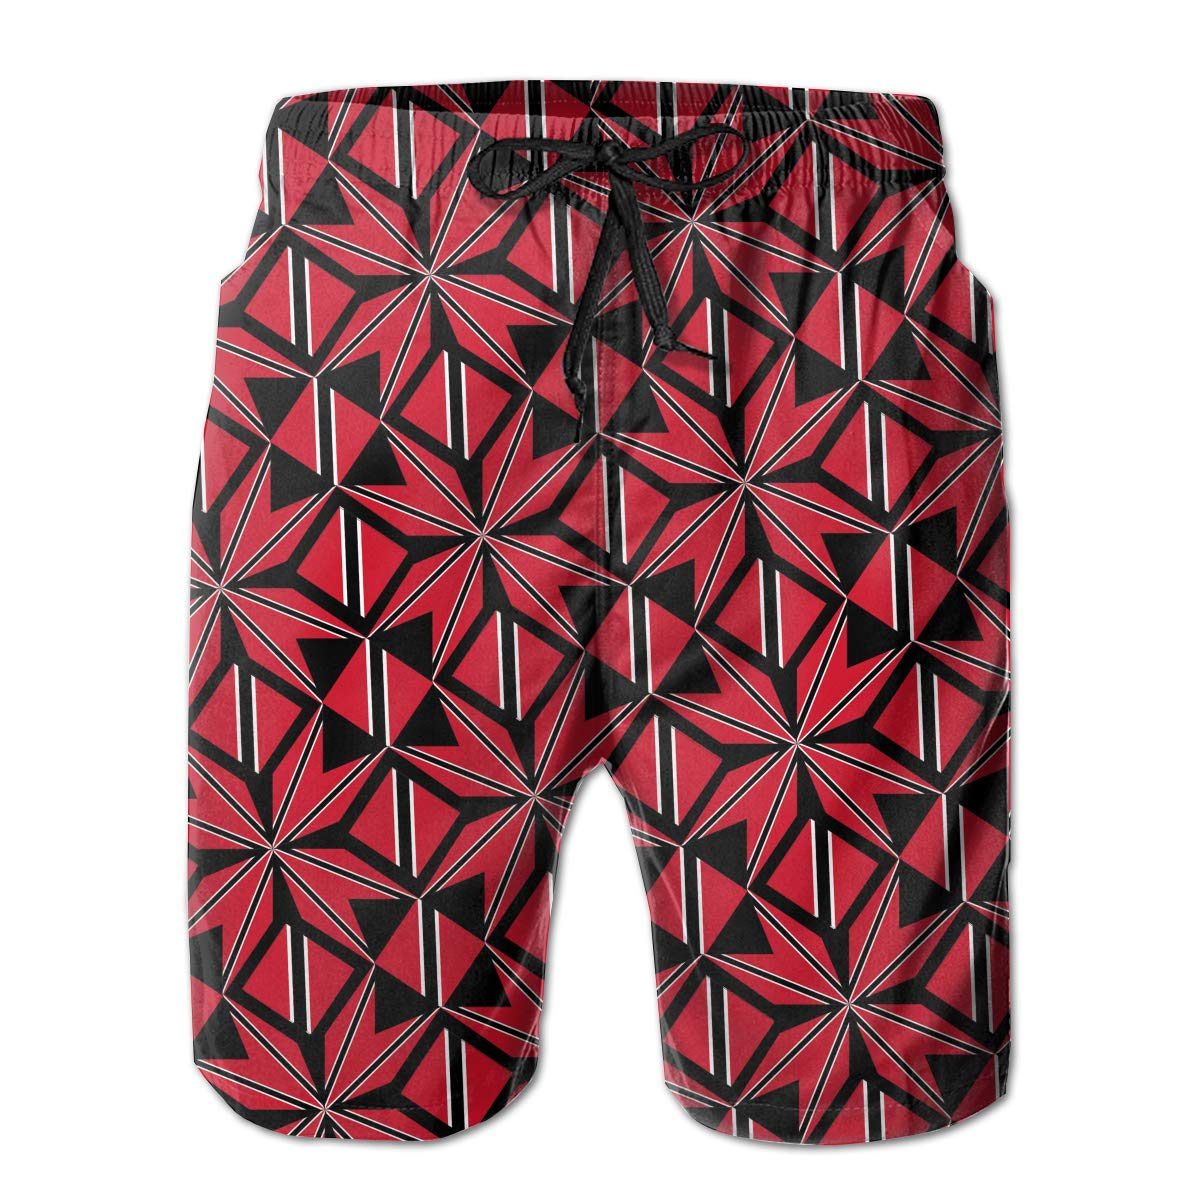 Mens Swim Trunks Trinidad and Tobago Flag Artascope Flower Quick Dry Beach Board Shorts with Mesh Lining